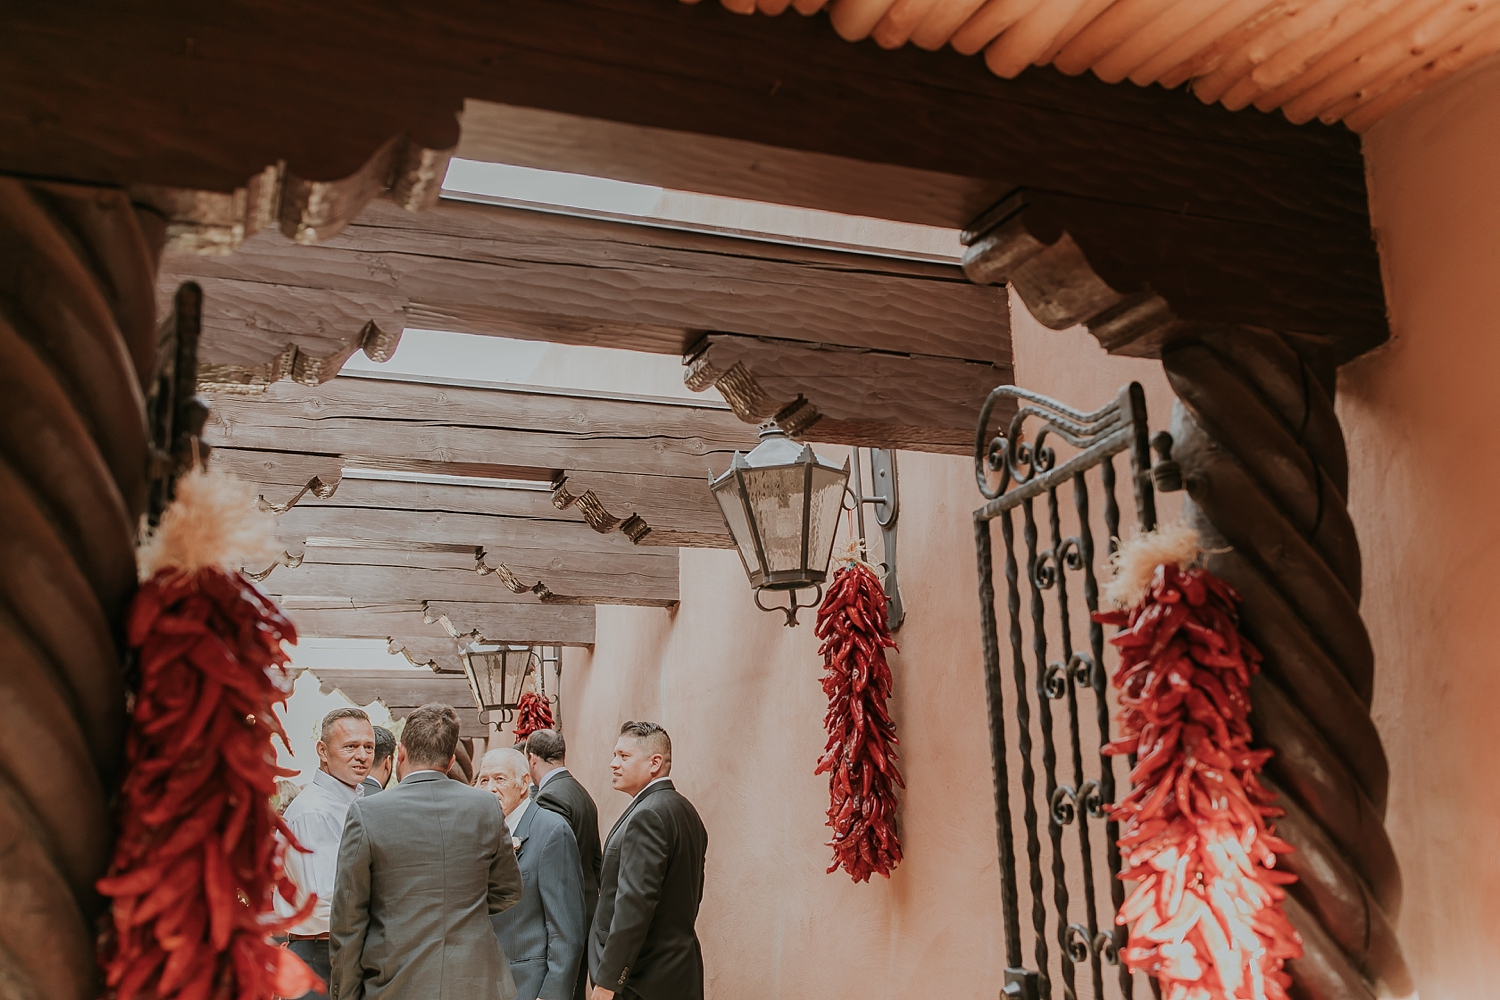 Alicia+lucia+photography+-+albuquerque+wedding+photographer+-+santa+fe+wedding+photography+-+new+mexico+wedding+photographer+-+la+fonda+santa+fe+wedding+-+santa+fe+fall+wedding+-+la+fonda+fall+wedding_0060.jpg